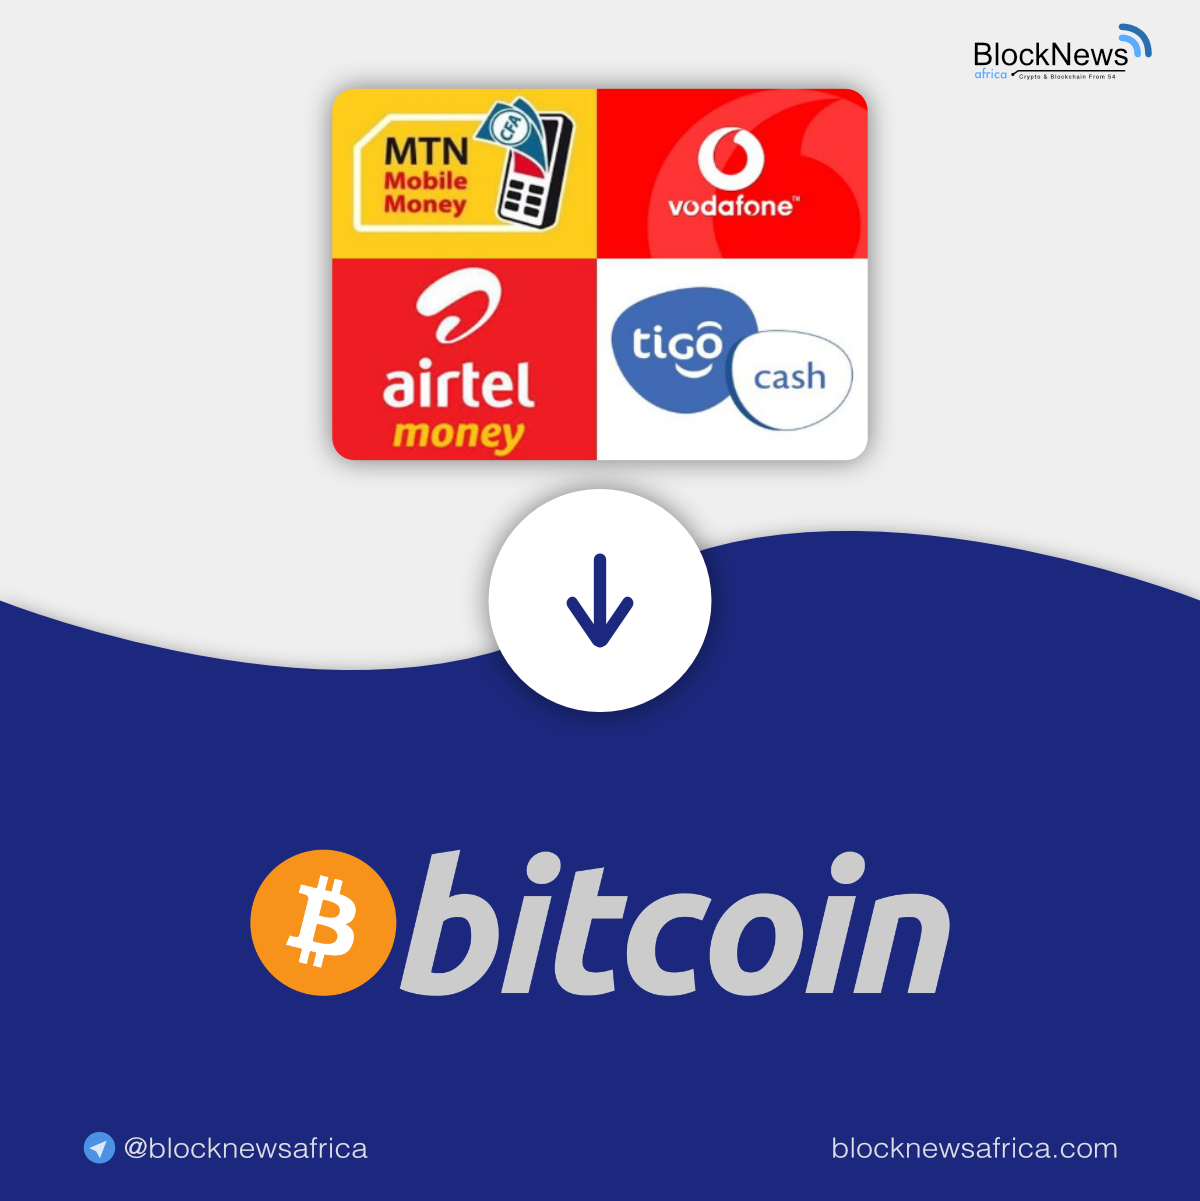 How To Buy Bitcoin in Ghana With Mobile Money (MoMo) in 2019